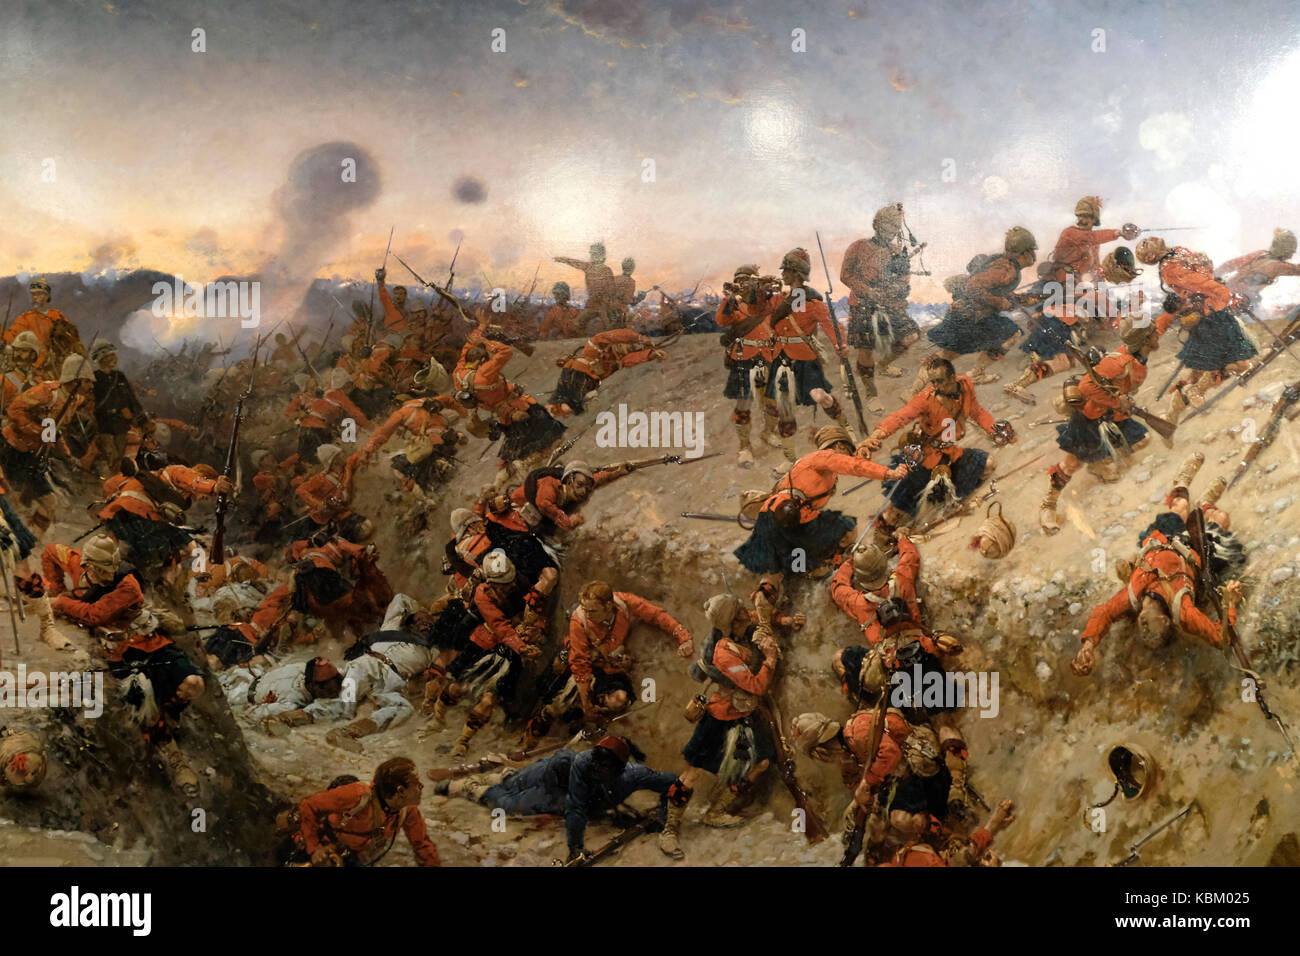 The Storming of Tel El Kebir - The 1st Battalion of the Black Watch are shown attacking enemy defences in this battle - Stock Image